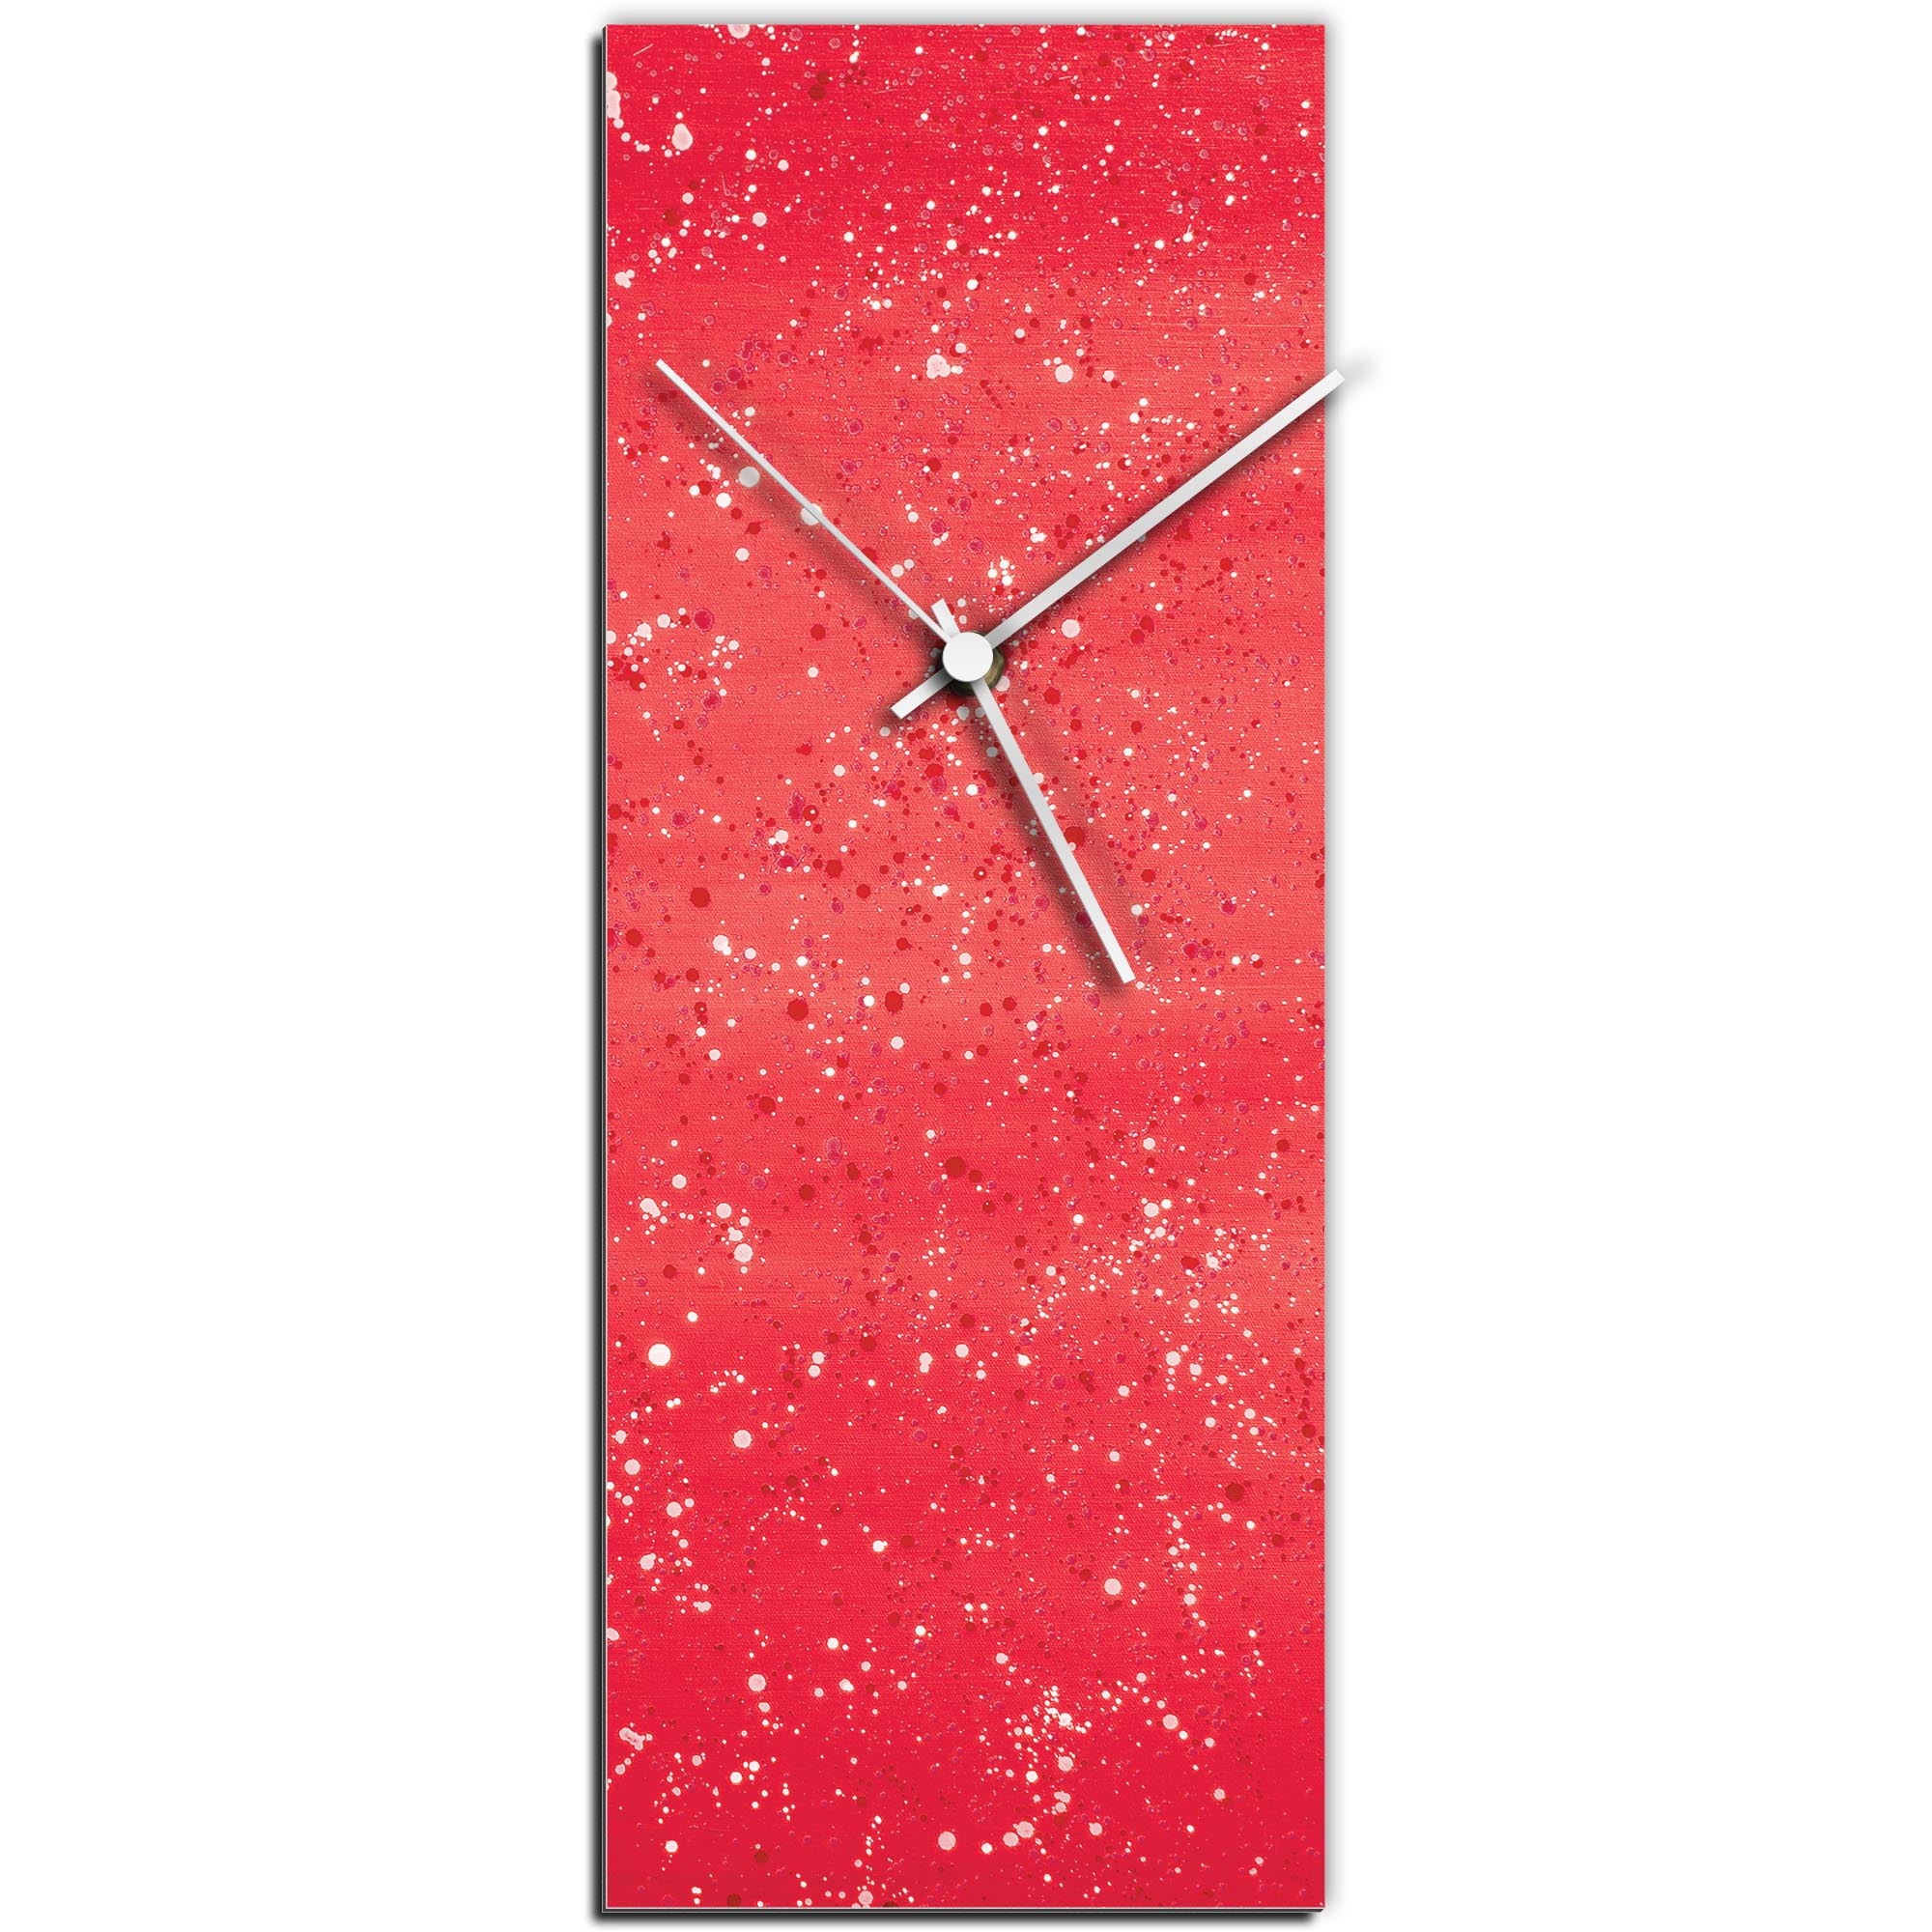 Mendo Vasilevski 'Red Flecked Clock' 6in x 16in Modern Wall Clock on Aluminum Composite